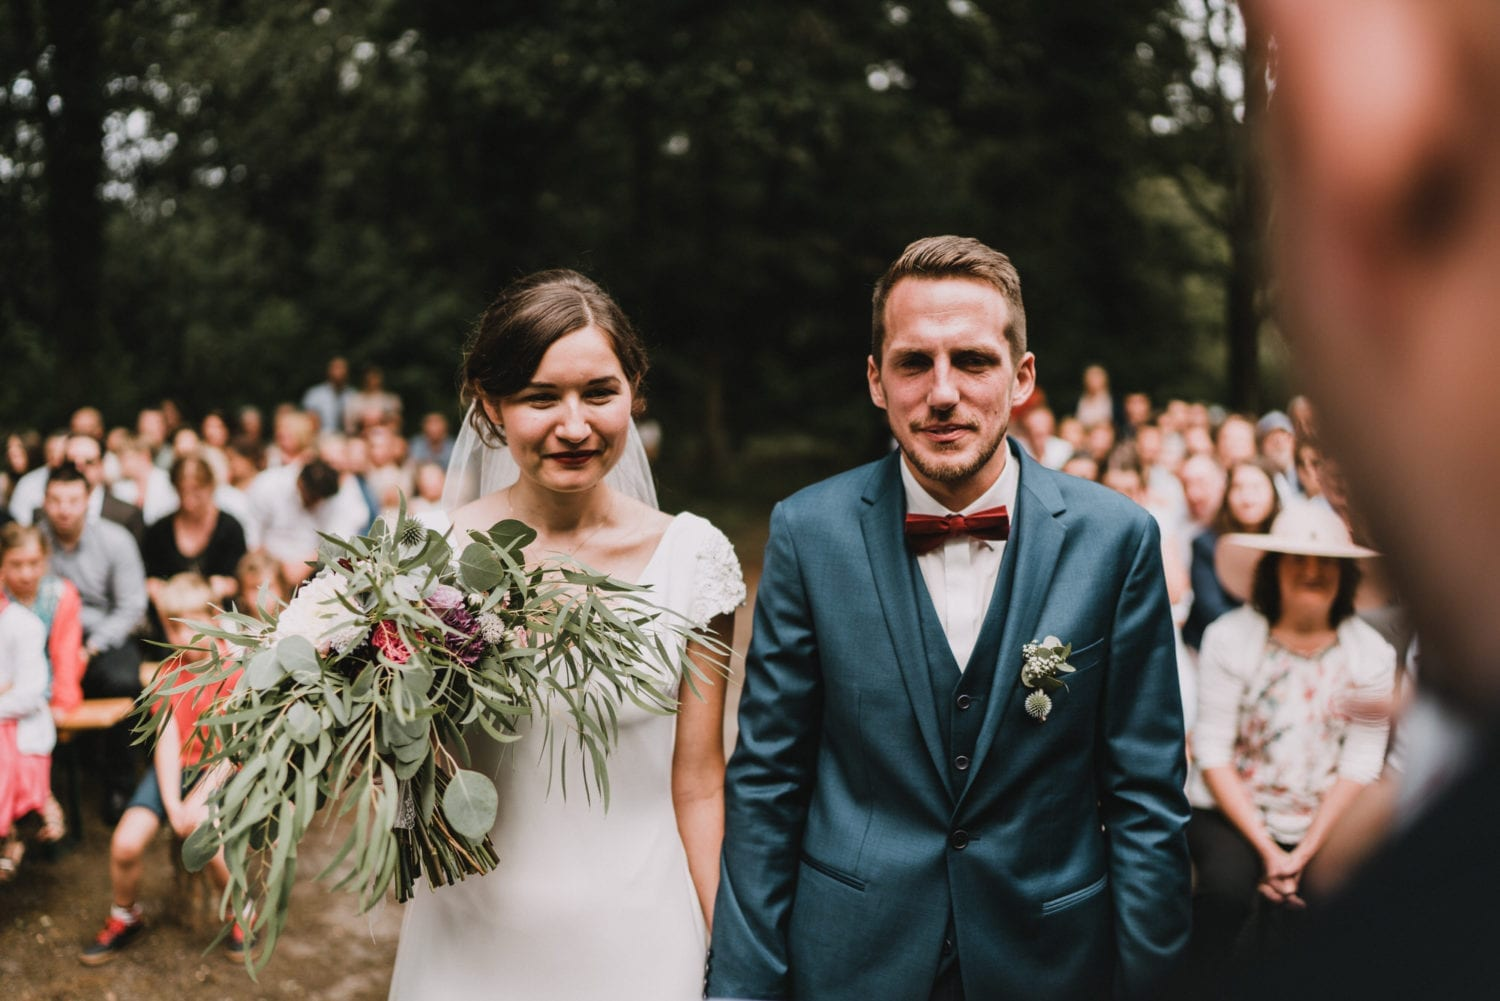 the best wedding and best french wedding photographer in the world